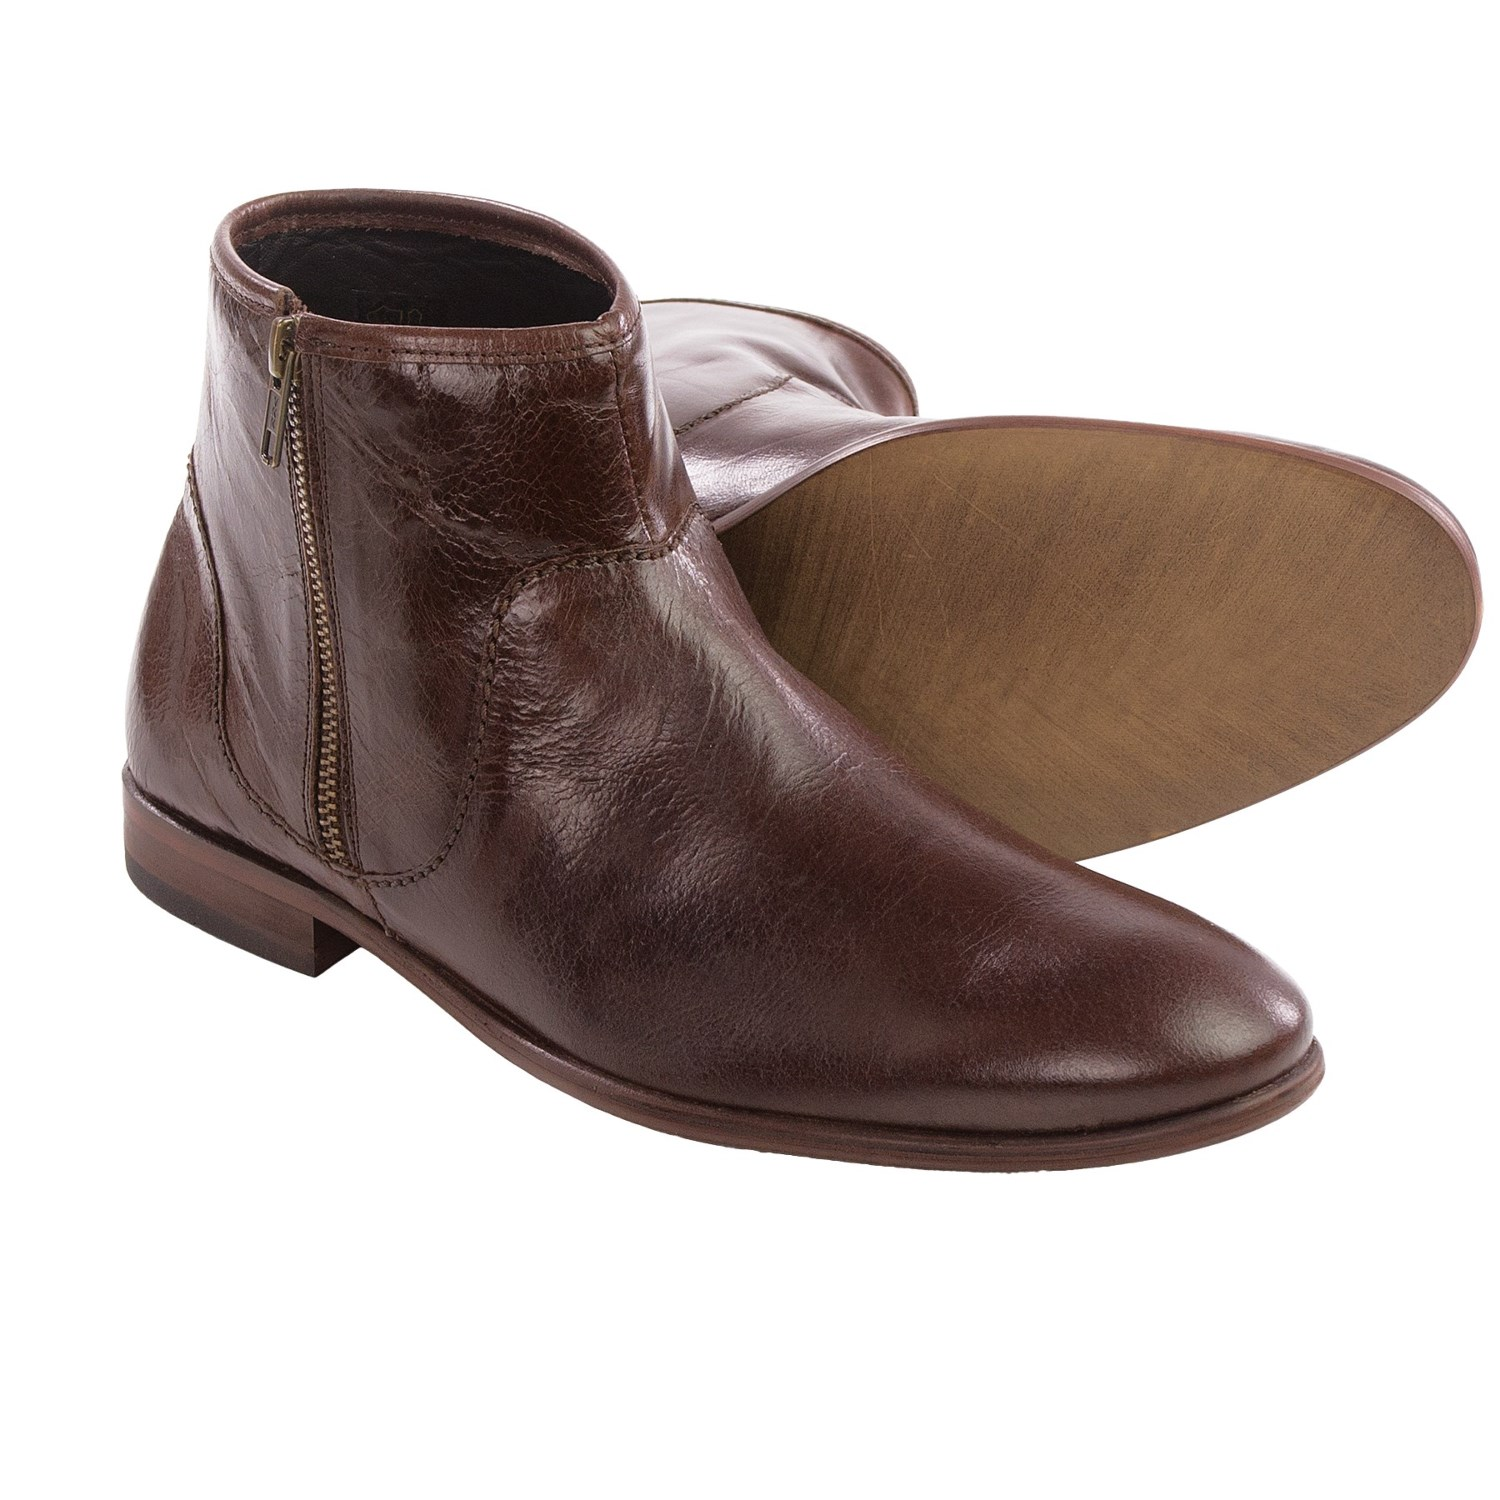 Ankle Boots For Men NvcOTRHn